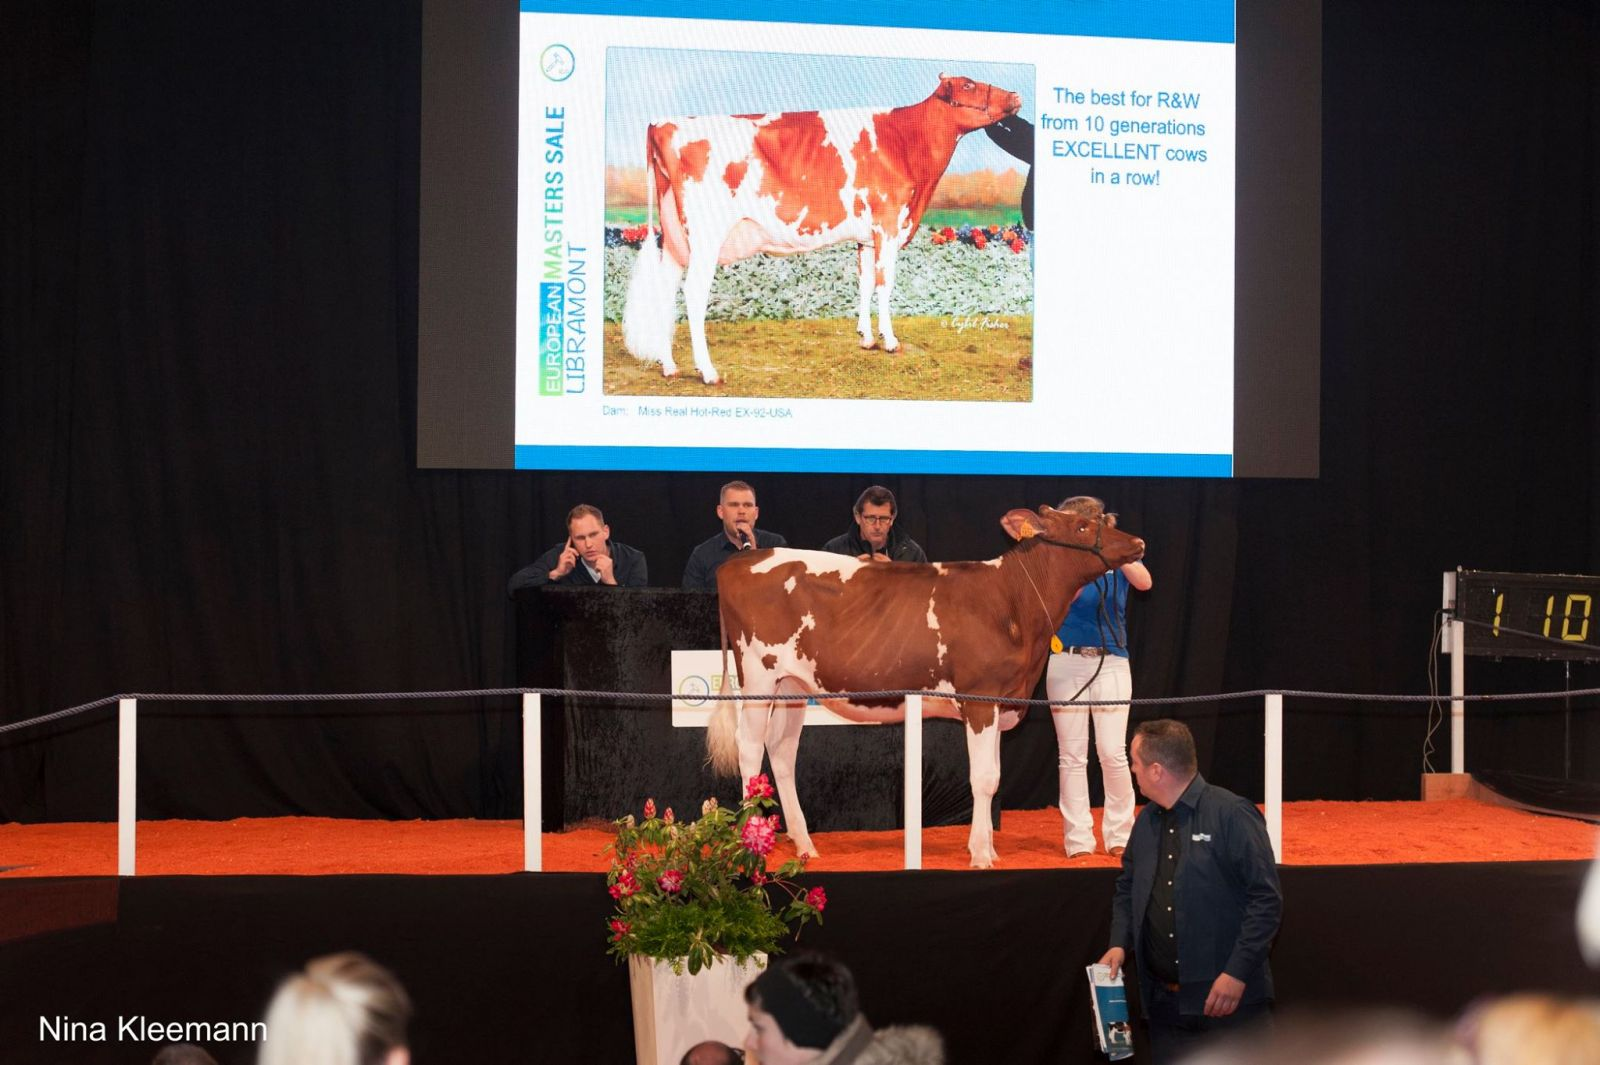 Show and Sale Recap :: The Bullvine - The Dairy Information